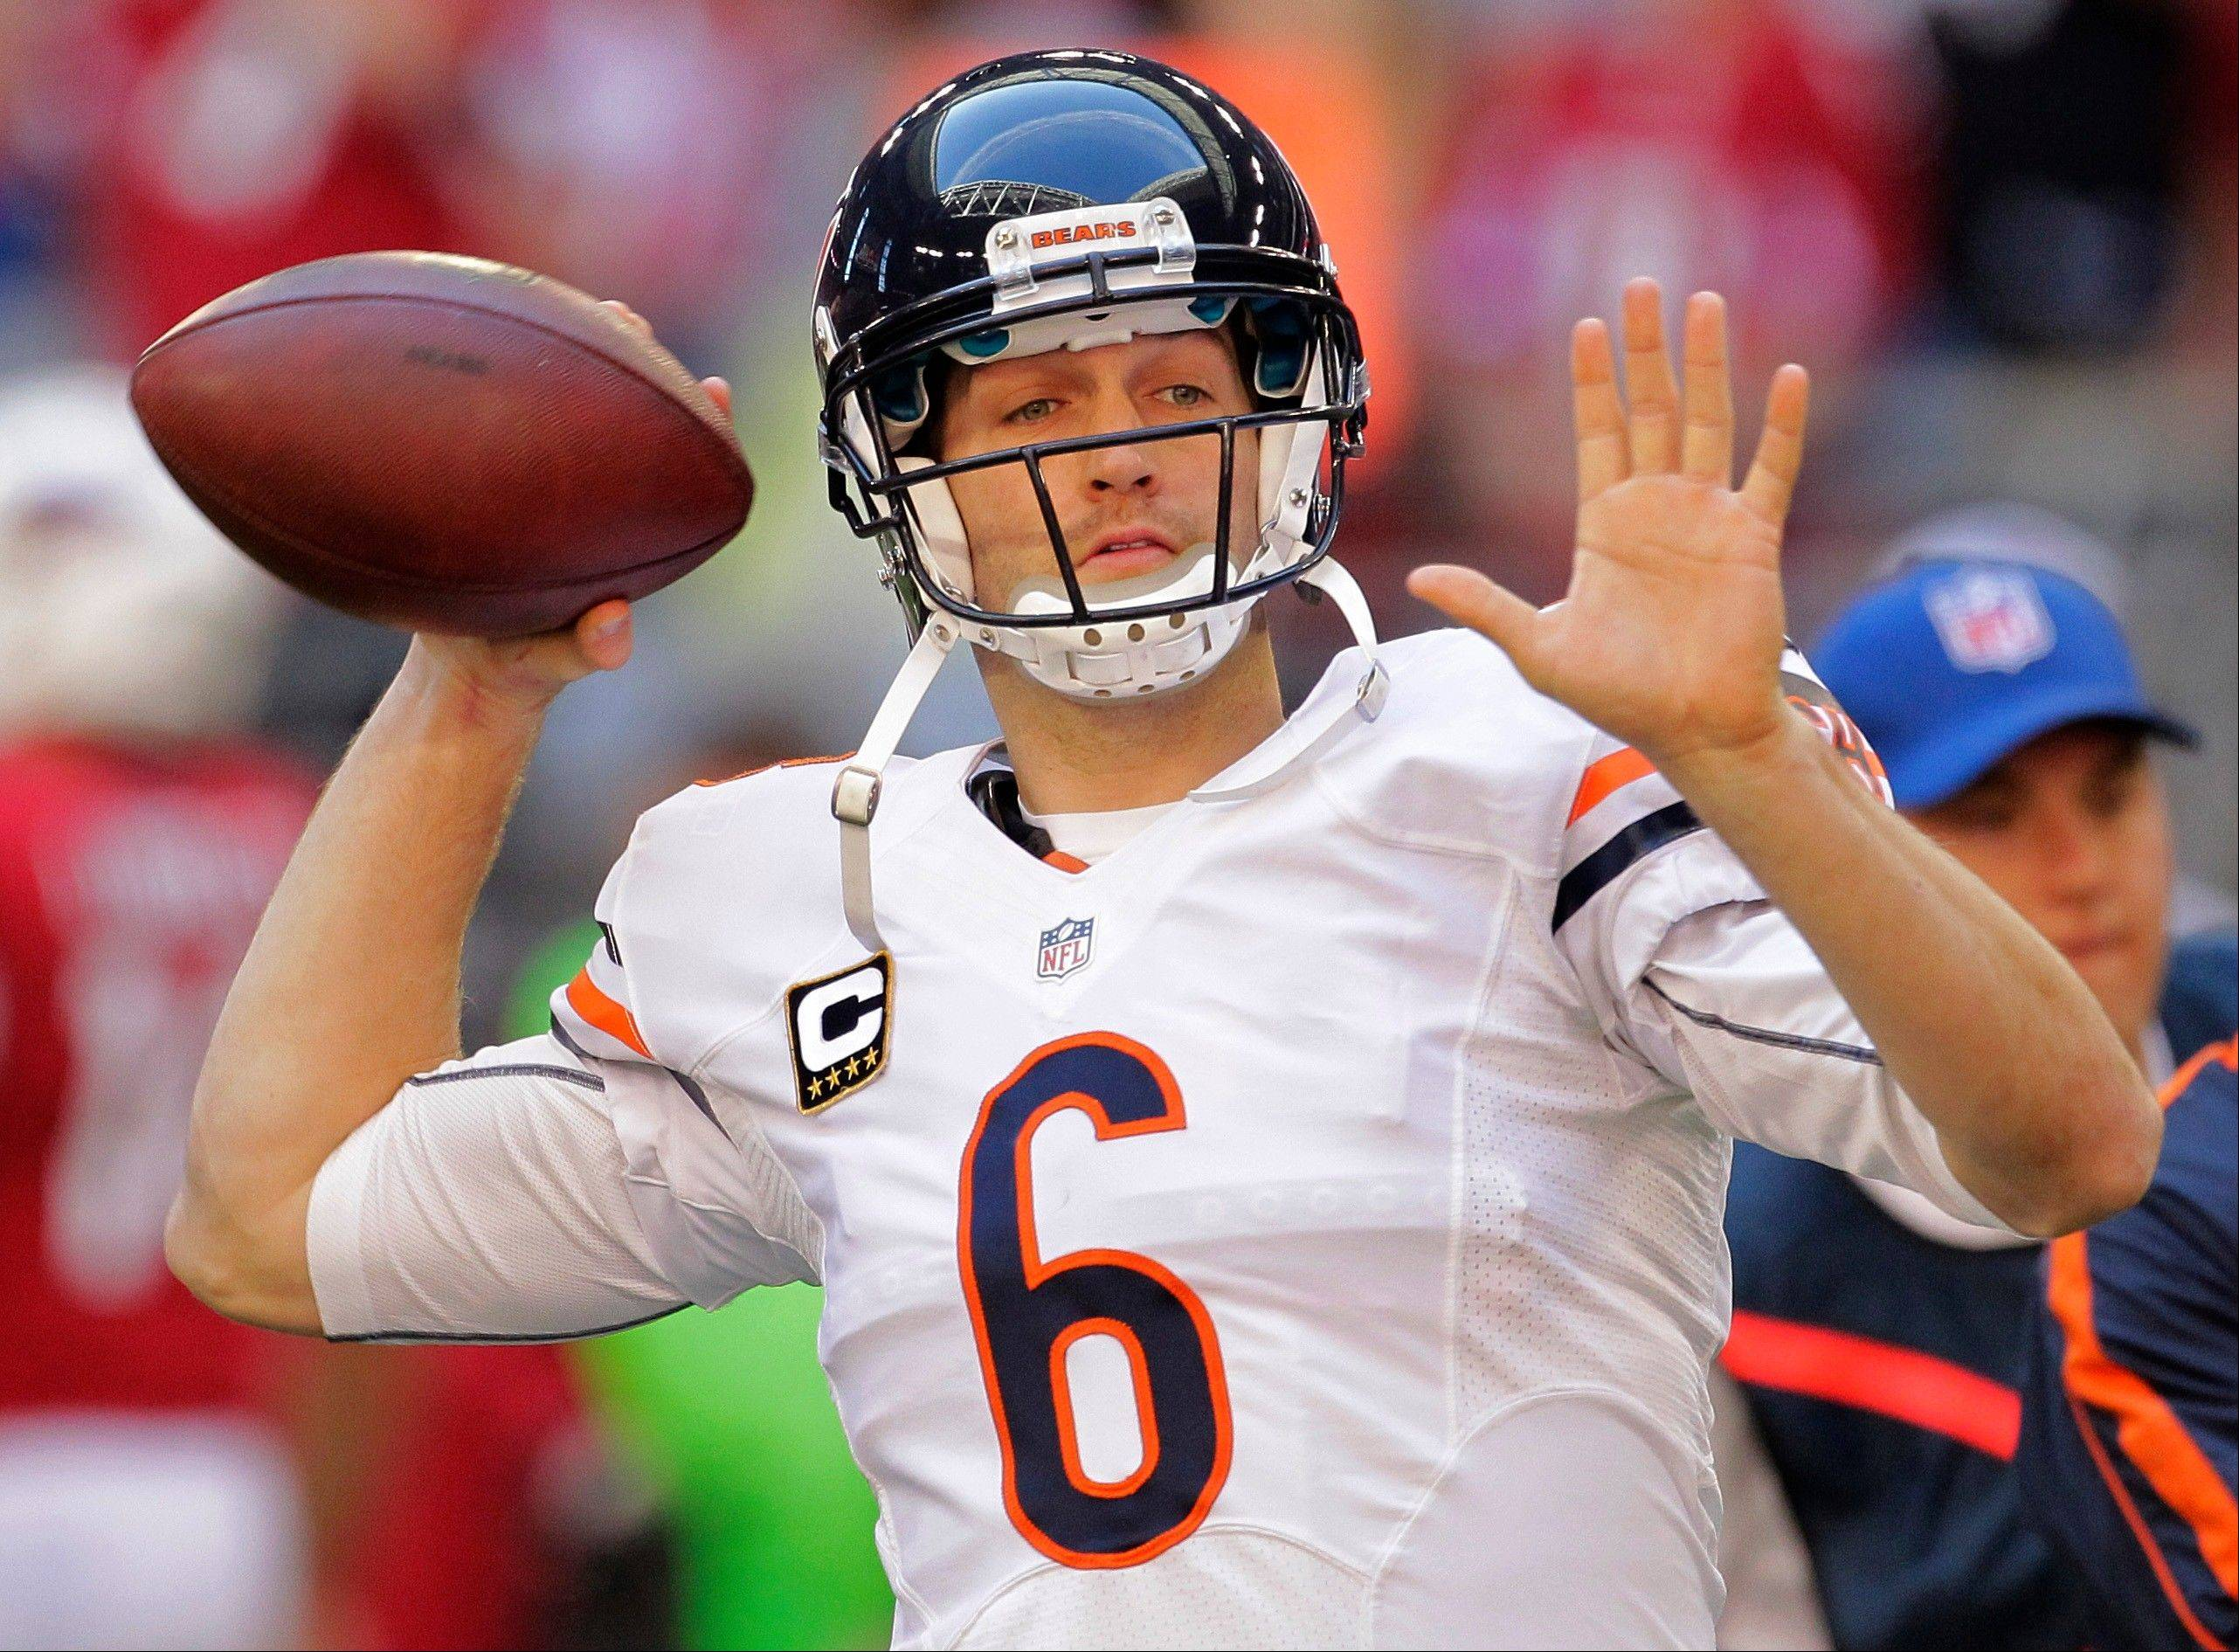 Bears quarterback Jay Cutler�s passer rating for the season is 80.2, 22nd in the NFL.